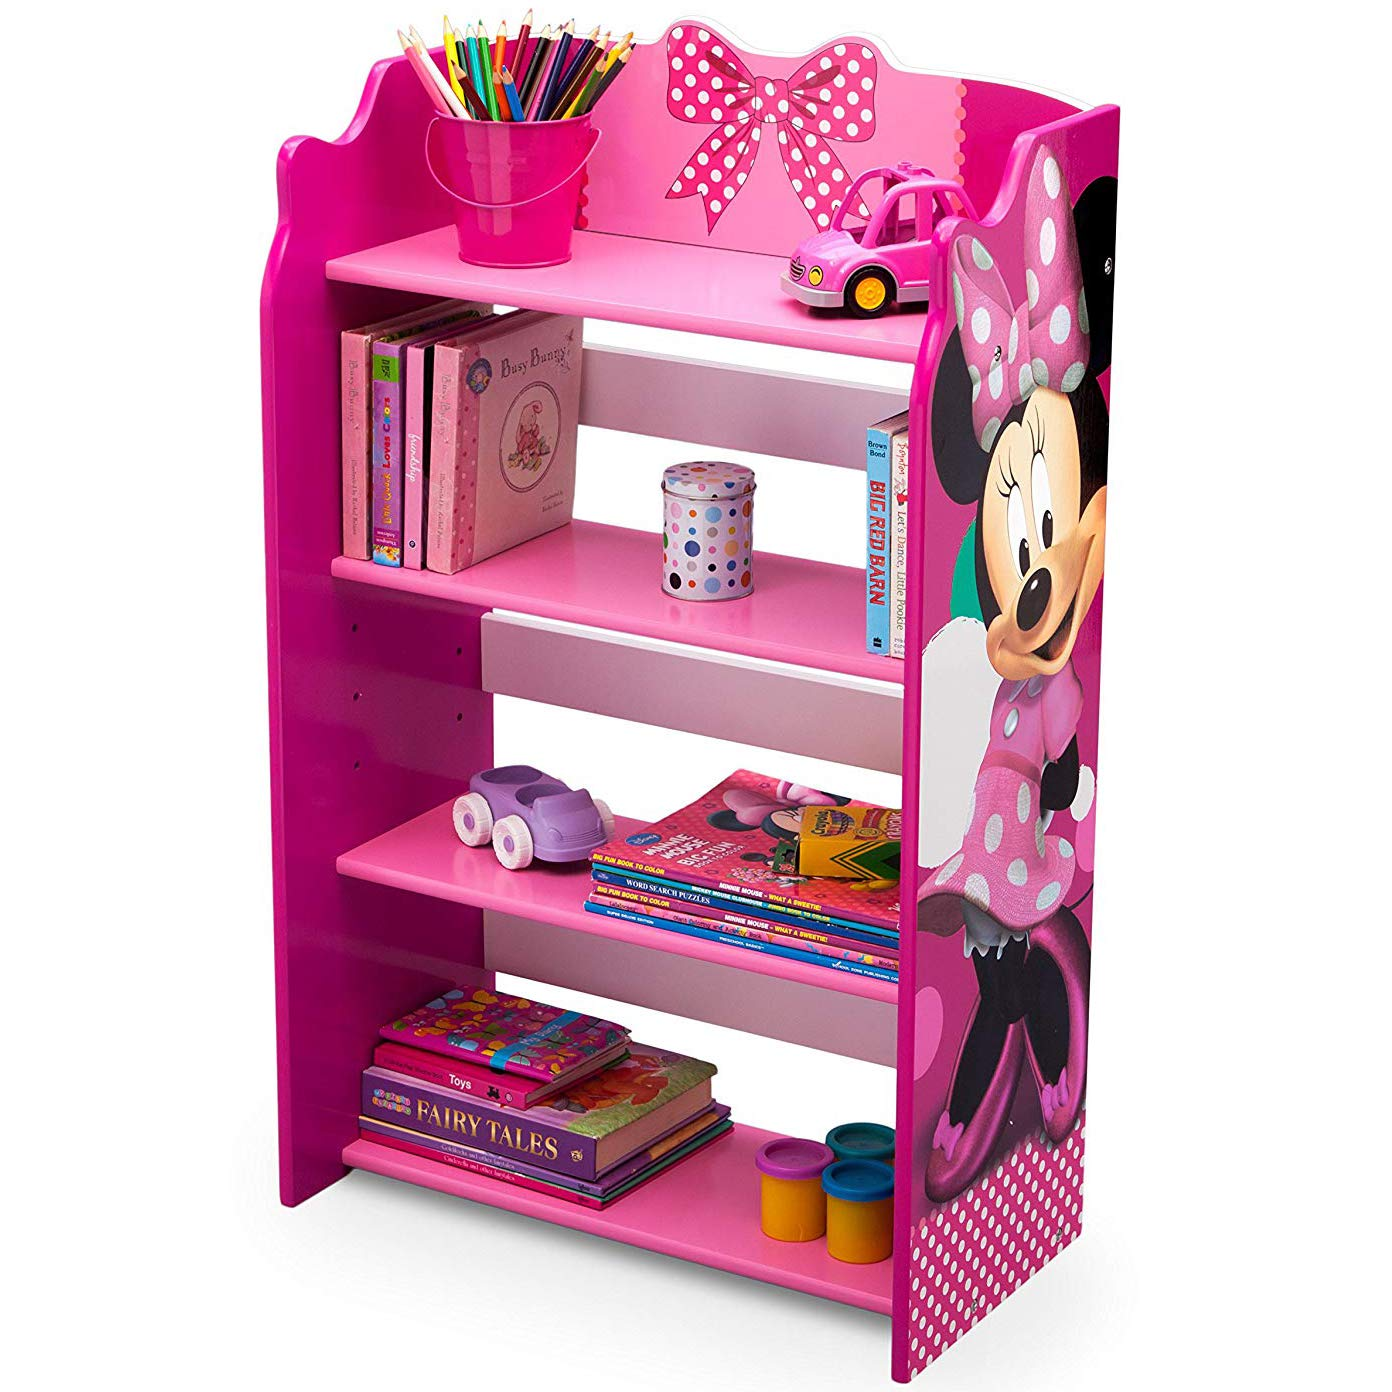 outlet store ac59e 1b8d2 Disney Minnie Mouse Storage Bookshelf